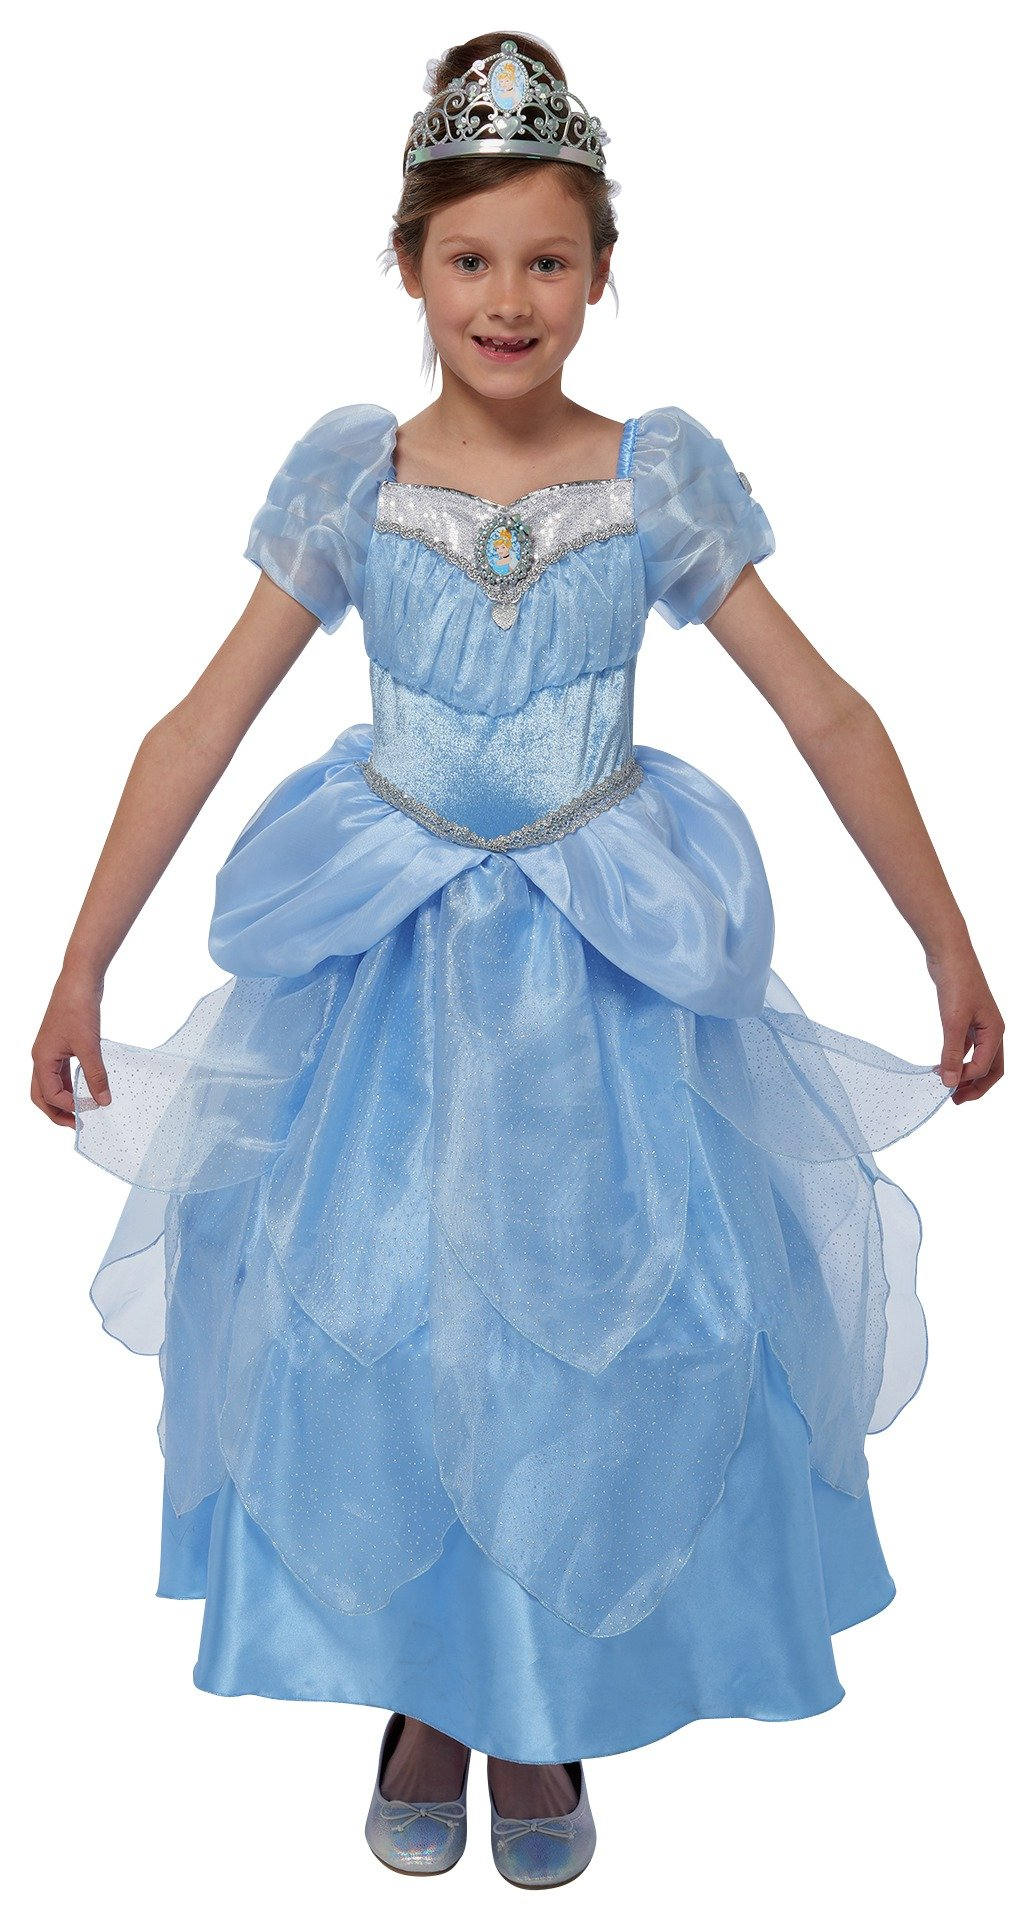 Disney Princess Cinderella Fancy Dress Costume - 3-4 Years